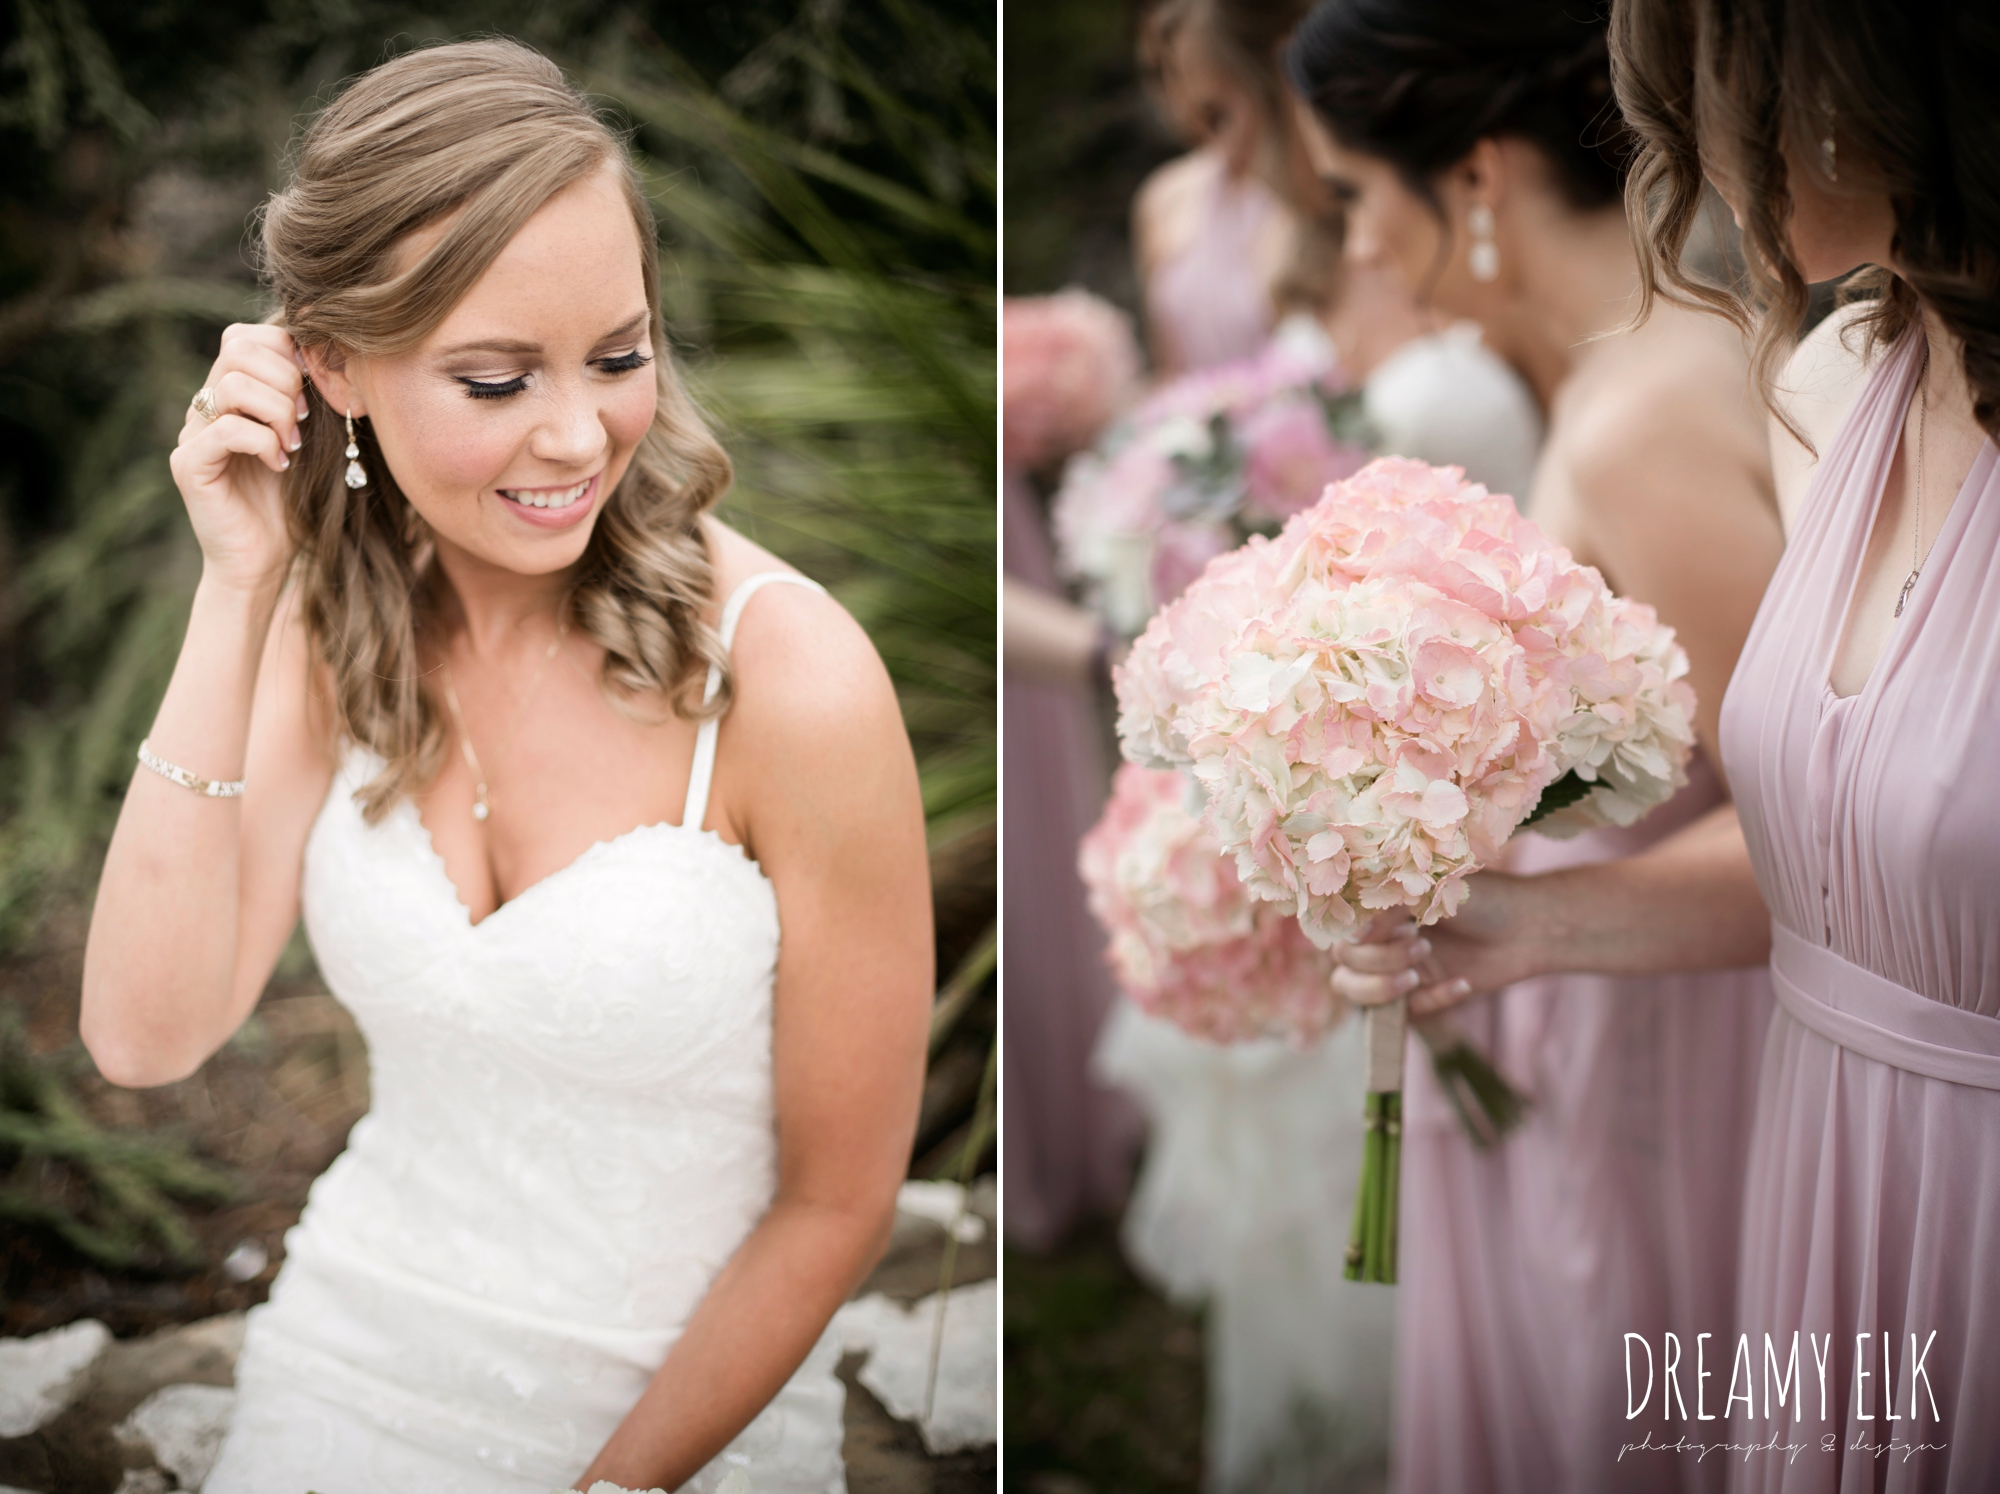 madame makeup and hair, bride and bridesmaids, mix and matched floor length blush bridesmaid dresses, backless column sheath wedding dress, heb blooms, cloudy march wedding photo, canyon springs golf club wedding, san antonio, texas {dreamy elk photography and design}